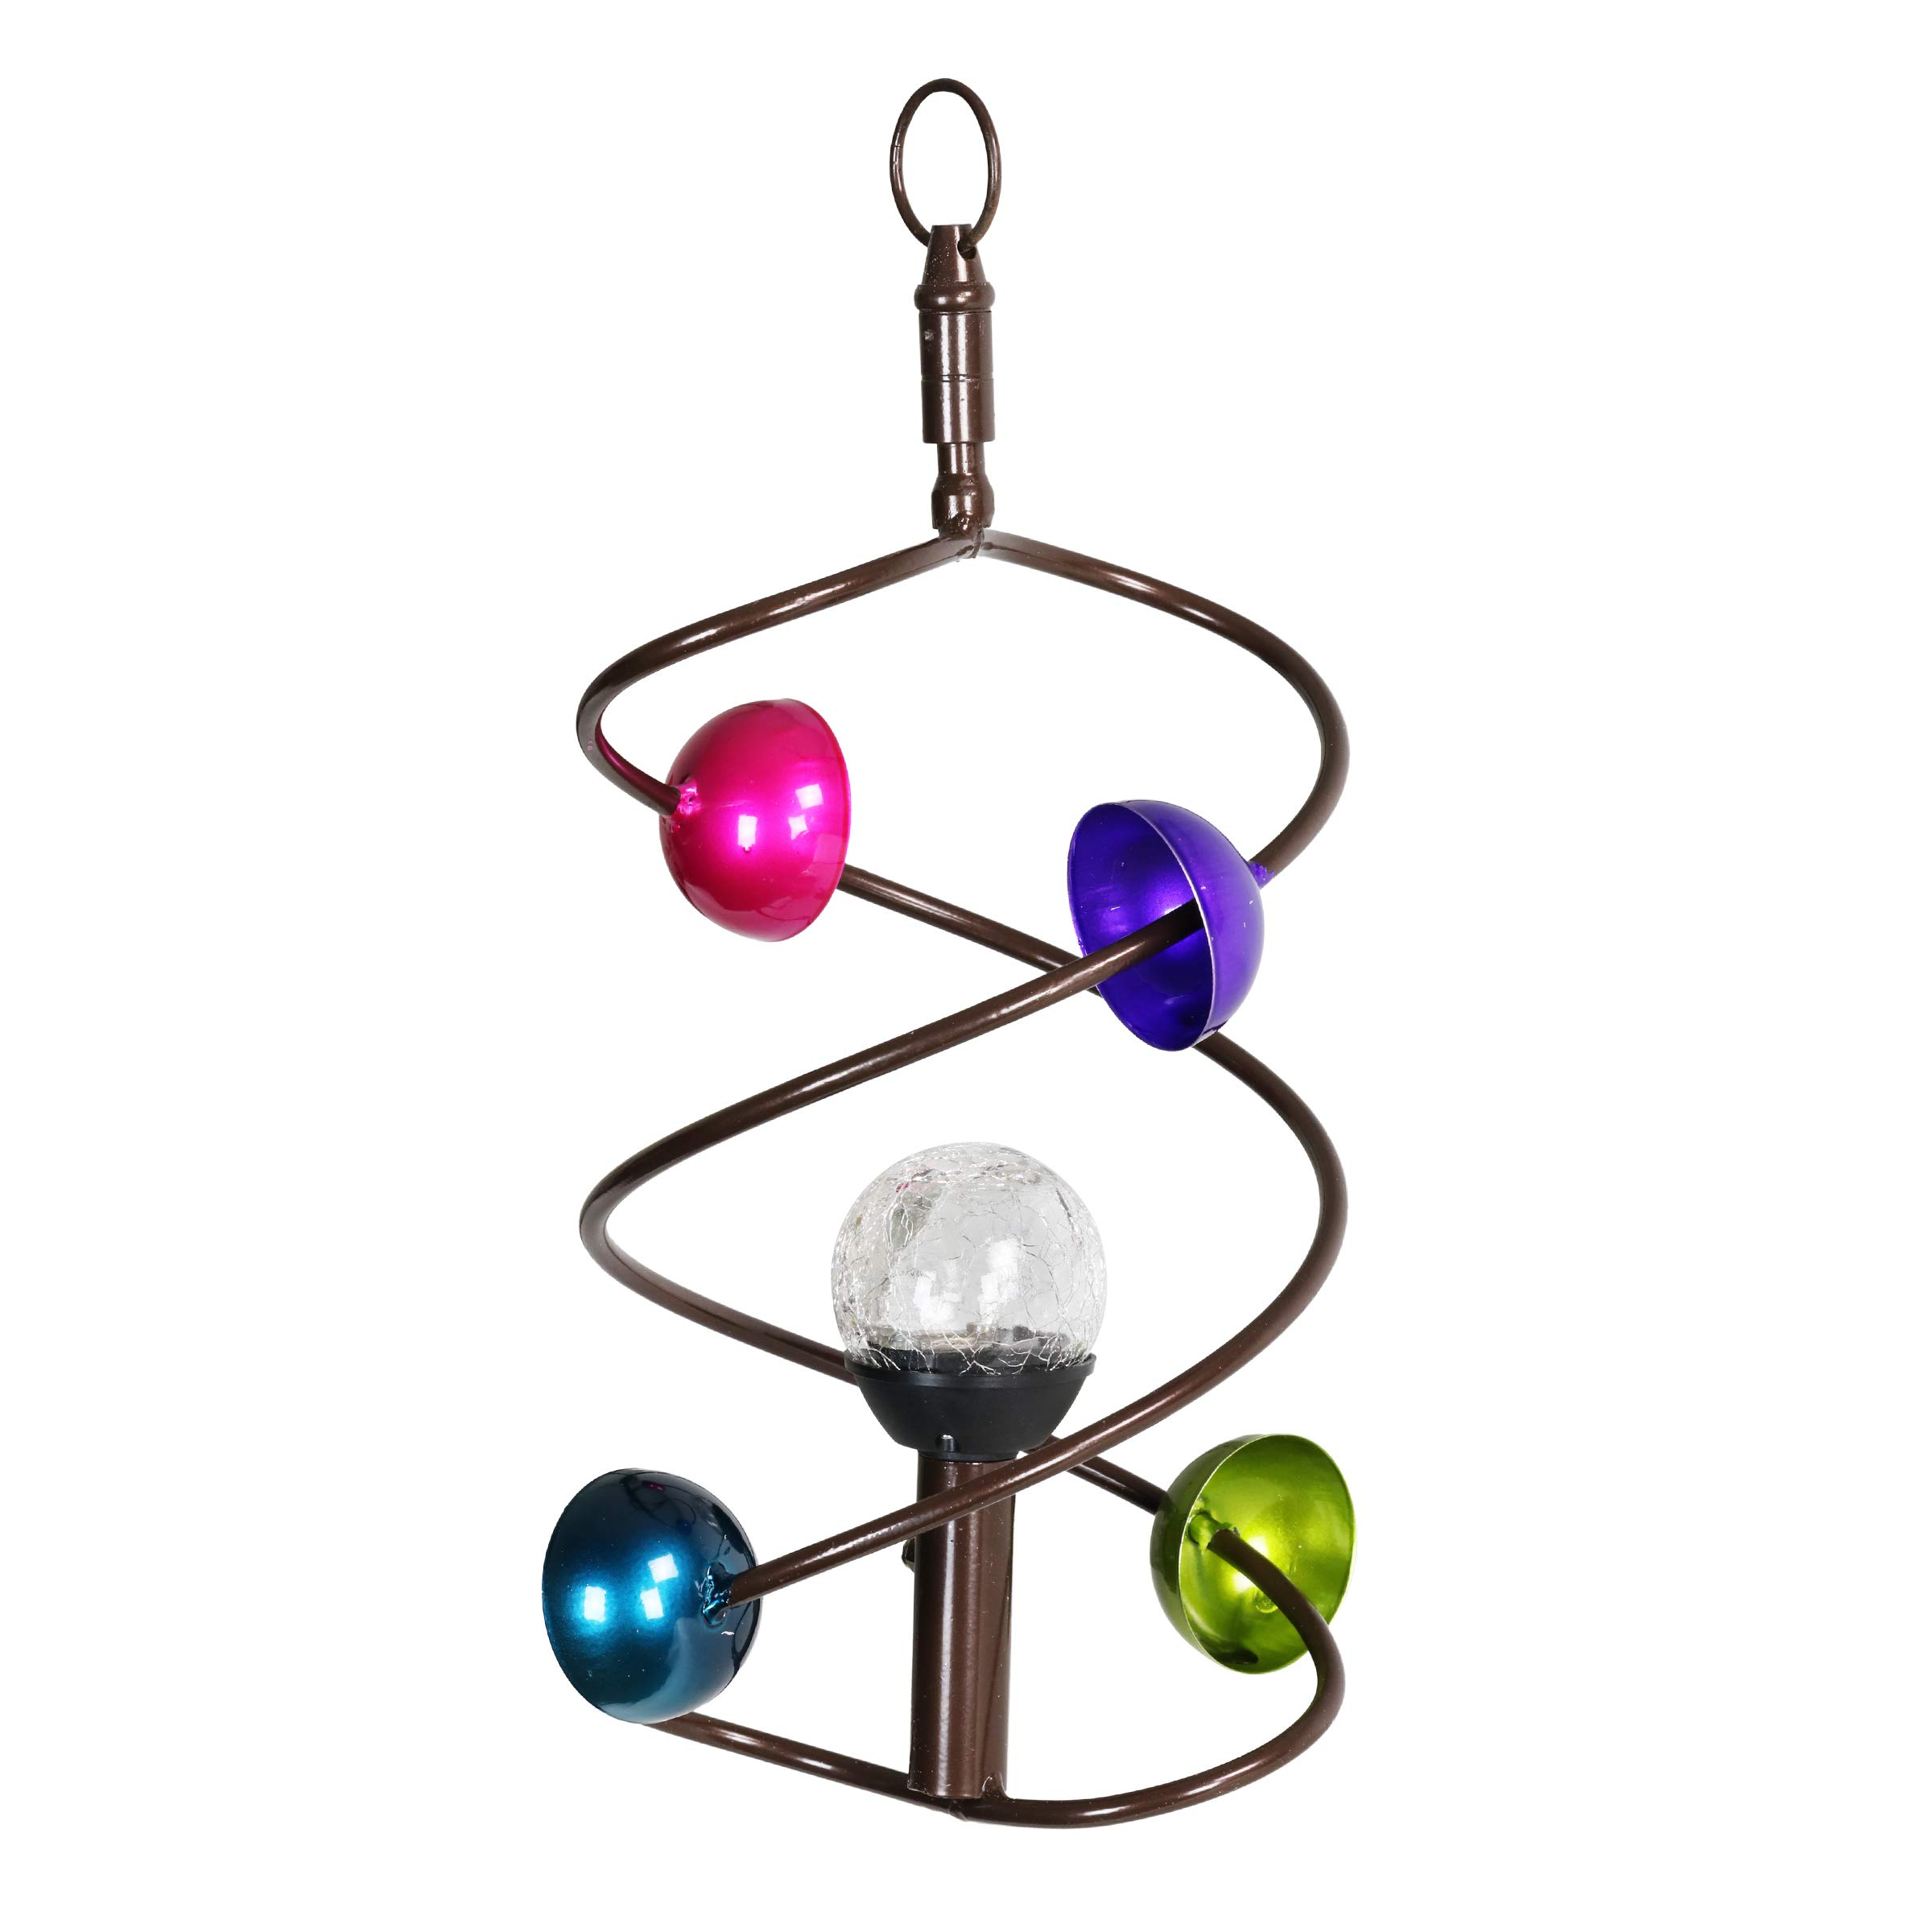 Solar Art-in-Motion Helix Twirler, Hanging Decor, Elegant Spinner, Spiral Ball Mobile, Home/Indoor / Outdoor Decoration